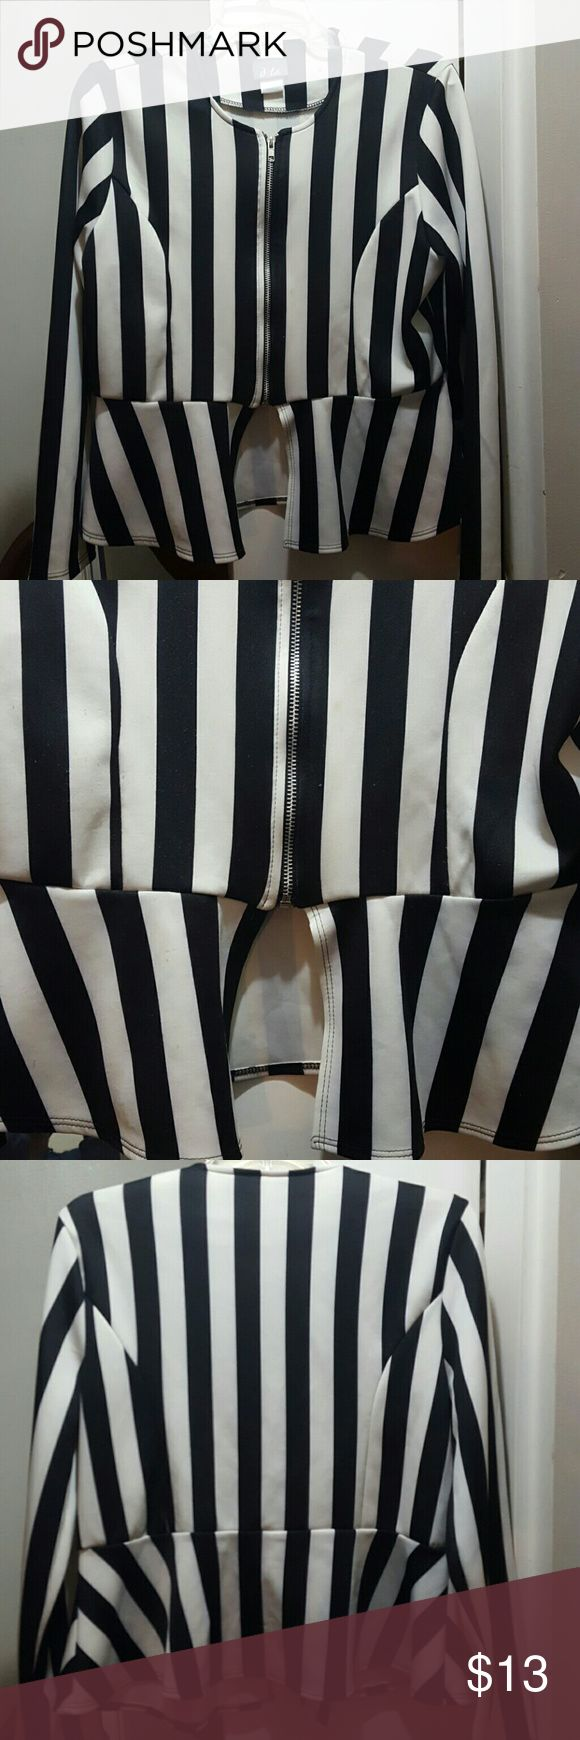 Woman's blazer Like new, wore once, zip up blazer, black and cream, 95% Polyester 5% Spandex Dots Tops